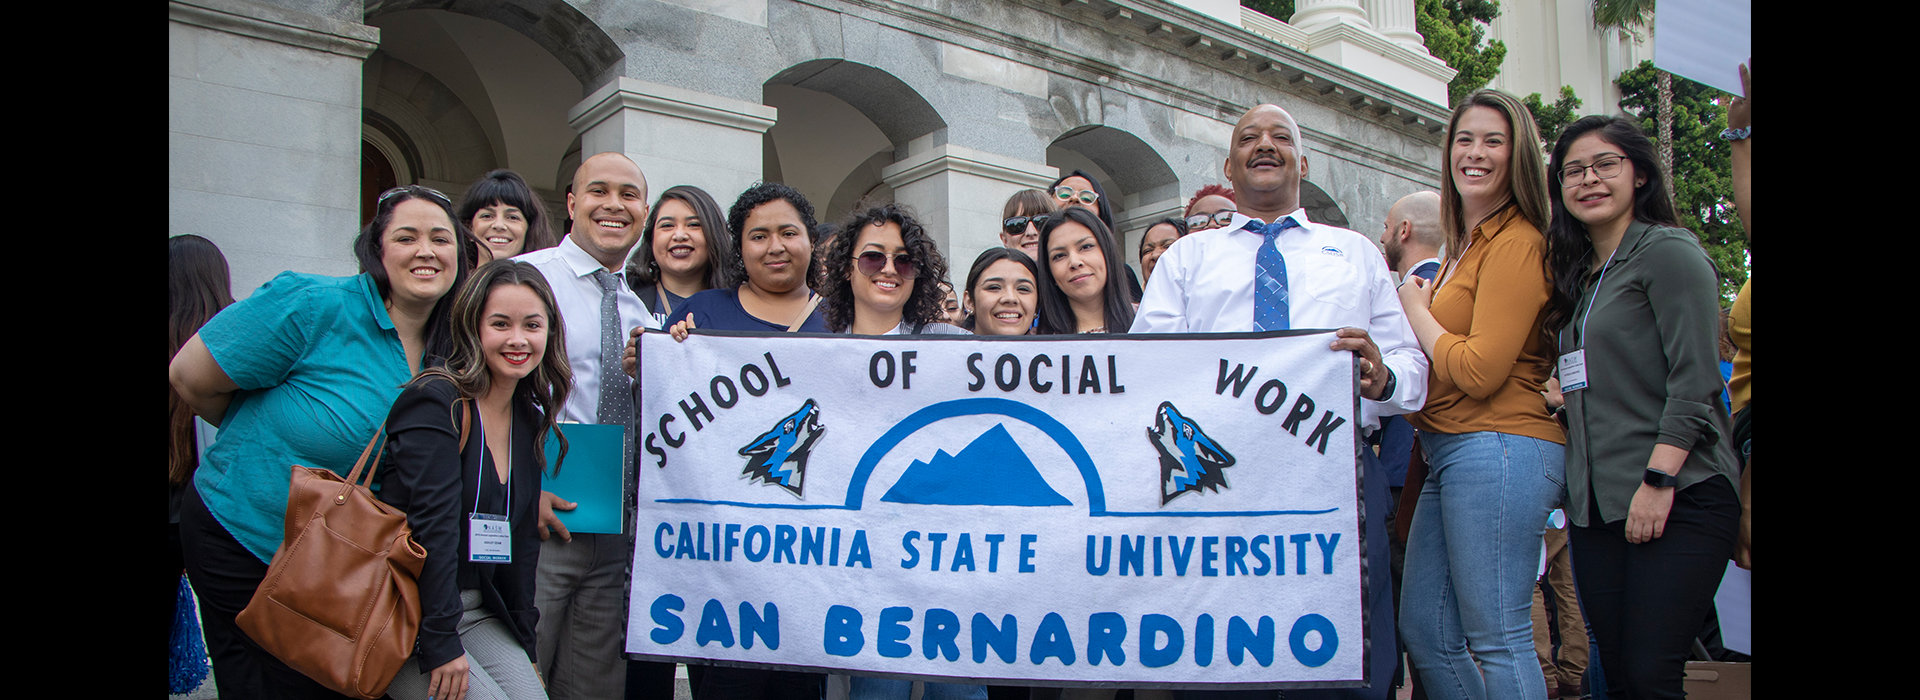 CSUSB School of Social Work students visit Sacramento, meet with lawmakers